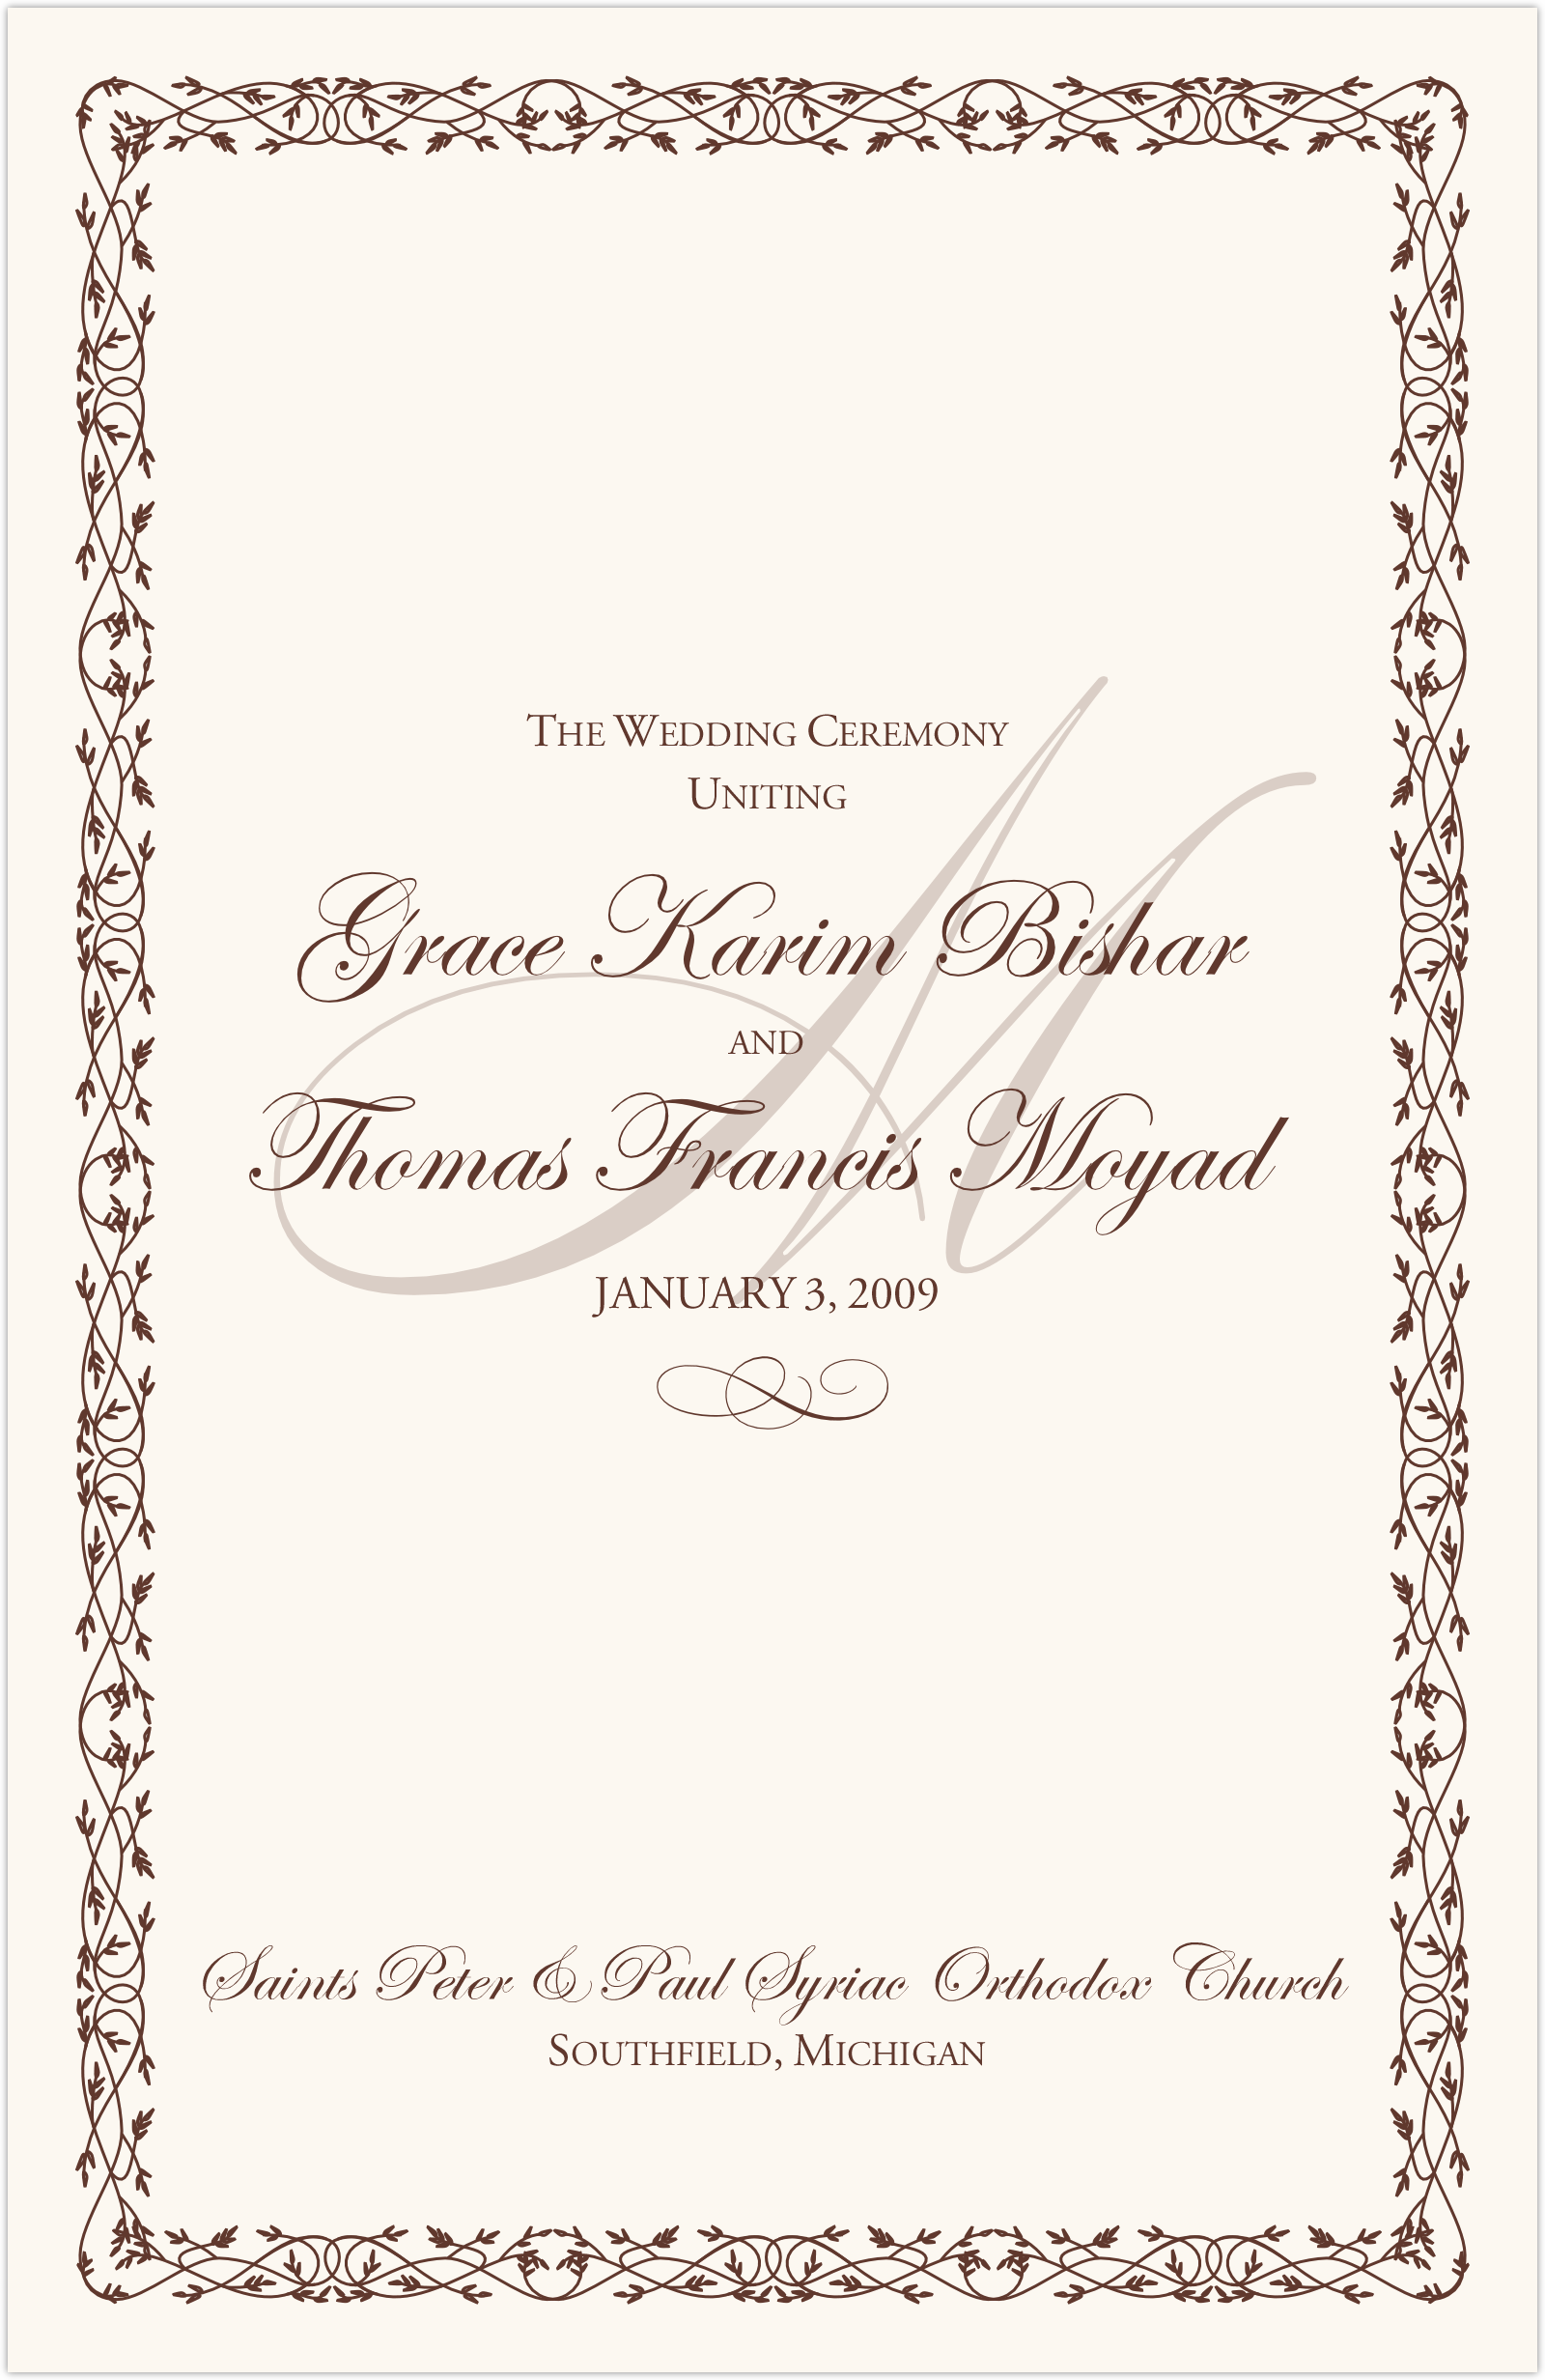 Wedding Program Wording Templates for Greek and Russian Orthodox – Oath of Office Template